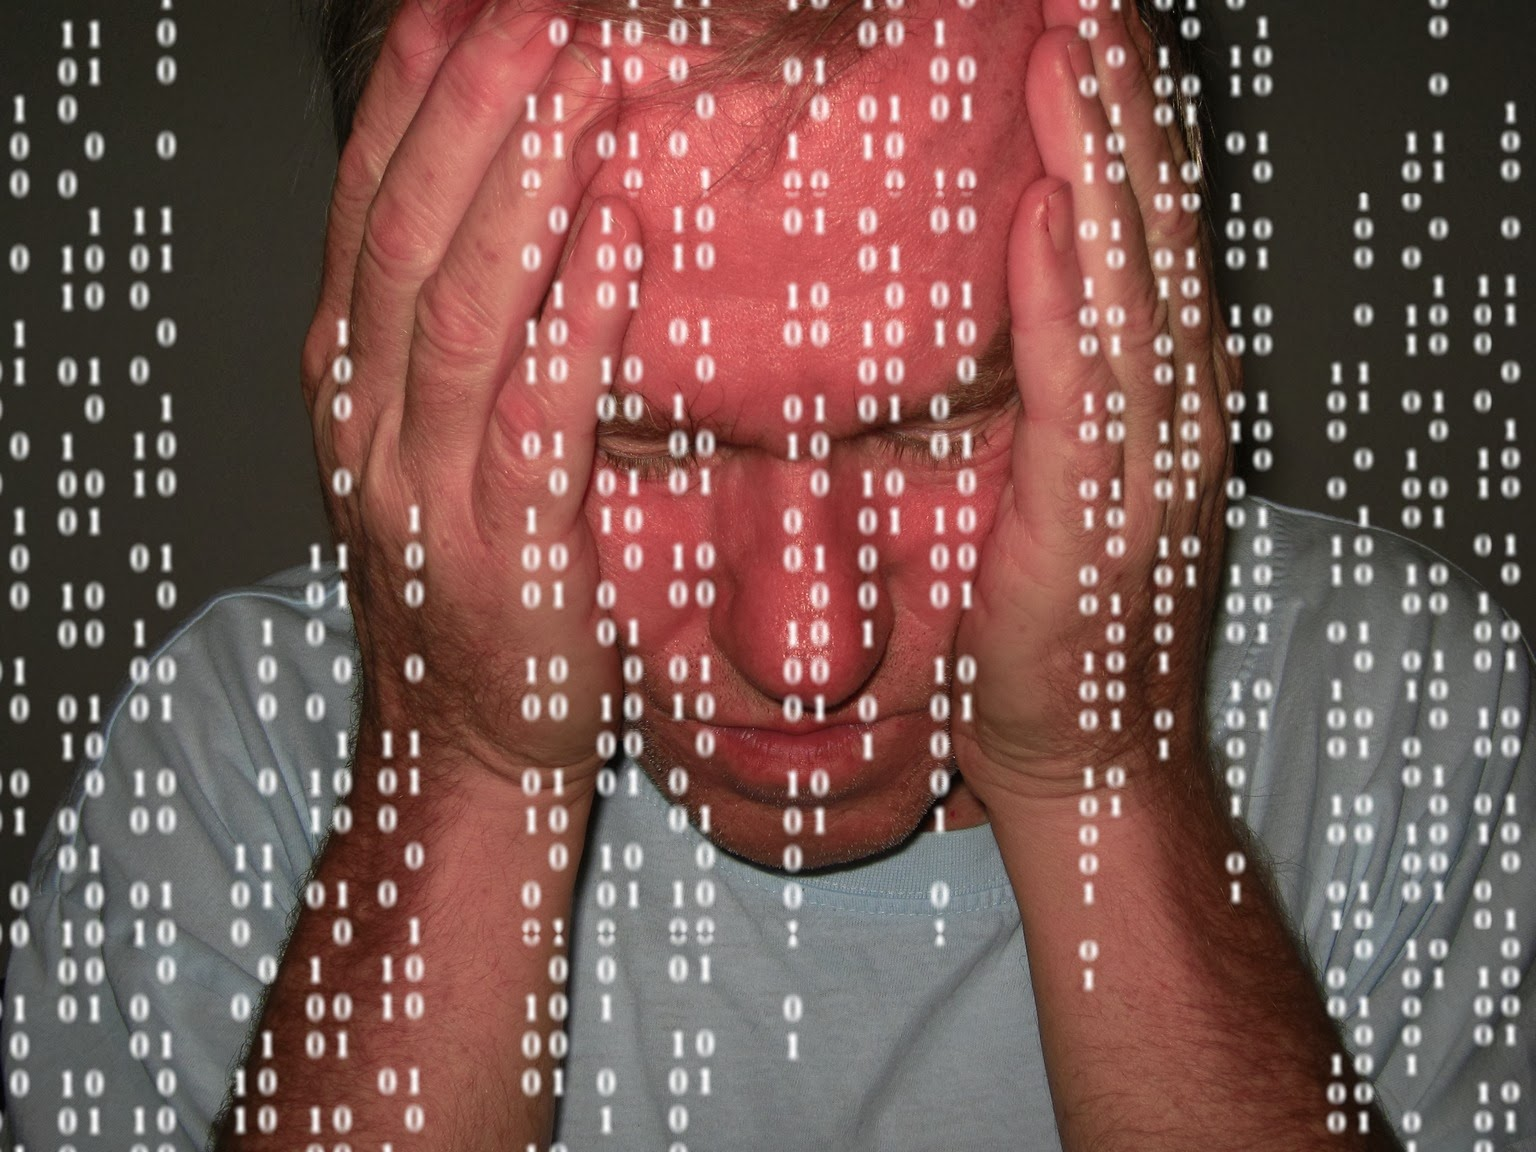 Why Are Hackers Interested in Your Computer?